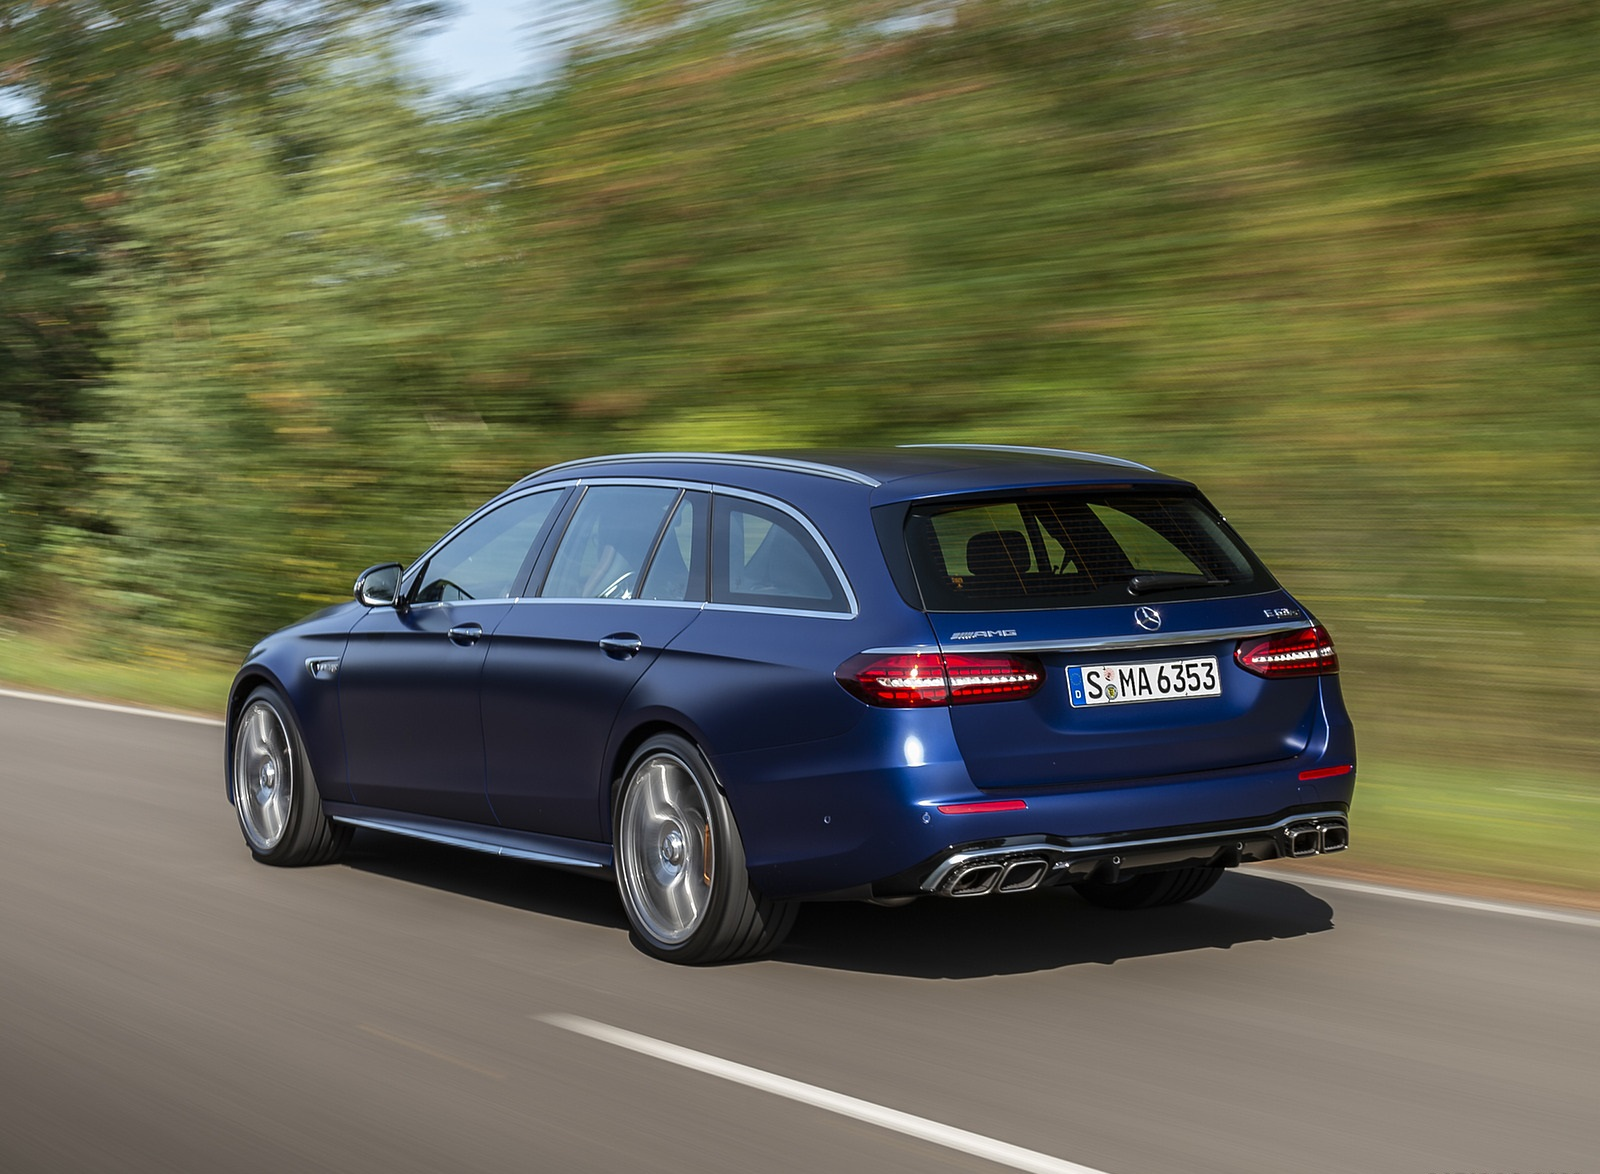 2021 Mercedes-AMG E 63 S Estate 4MATIC+ (Color: Designo Magno Brilliant Blue) Rear Three-Quarter Wallpapers (9)